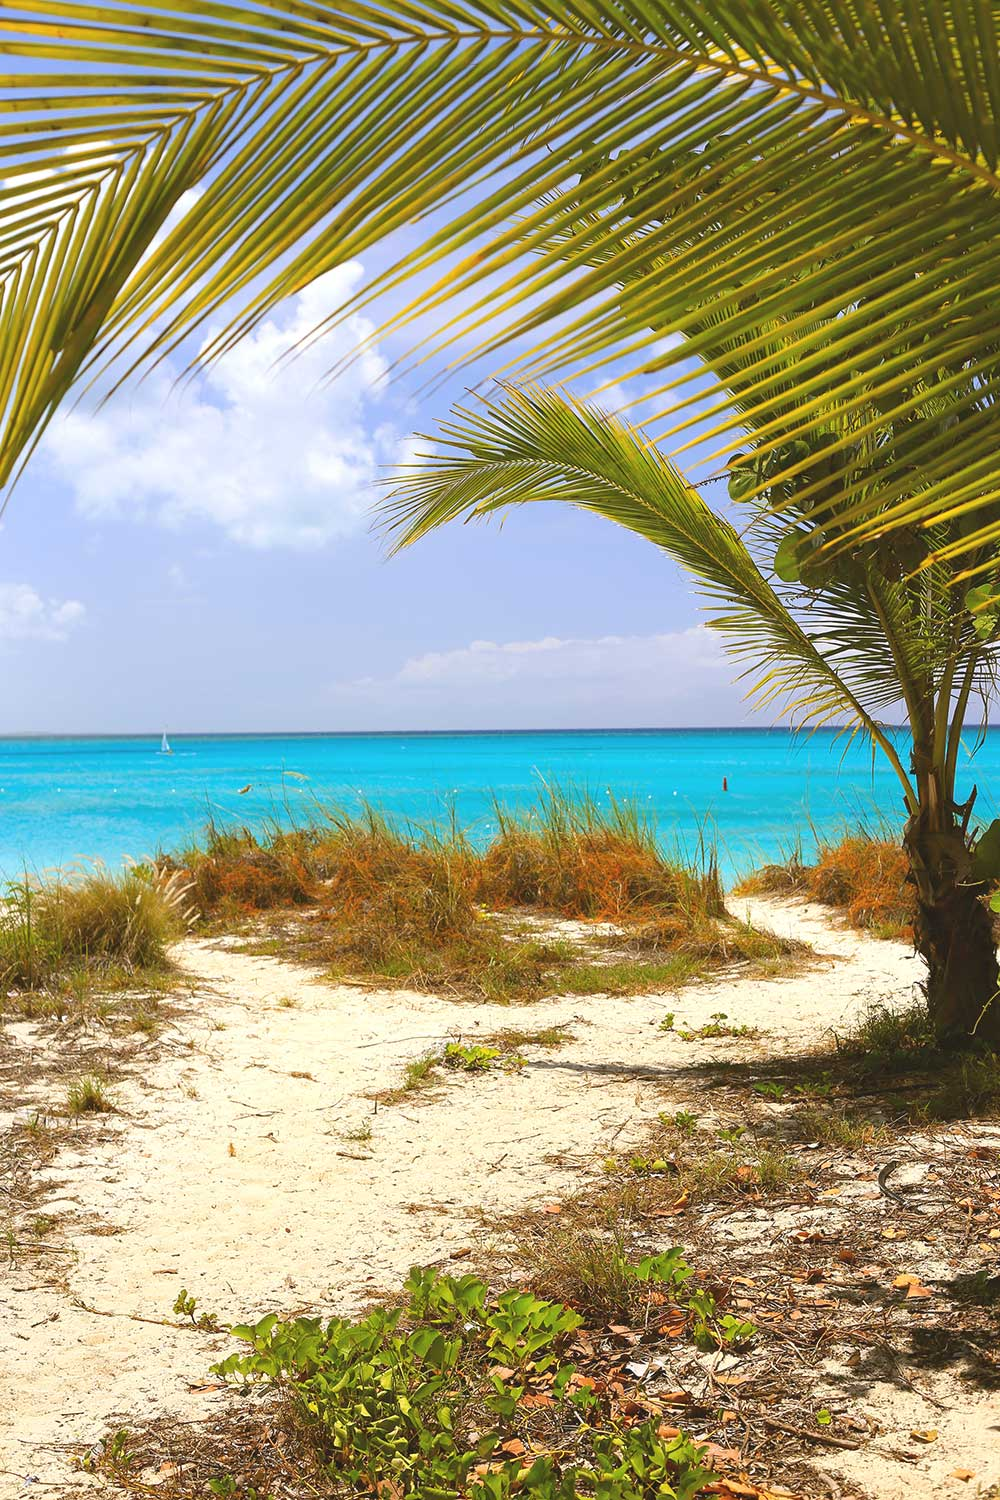 Grace Bay Beach in Turks & Caicos can feel secluded, even though it is a public beach. We avoid crowds by keeping to the far ends of Beaches' resort.